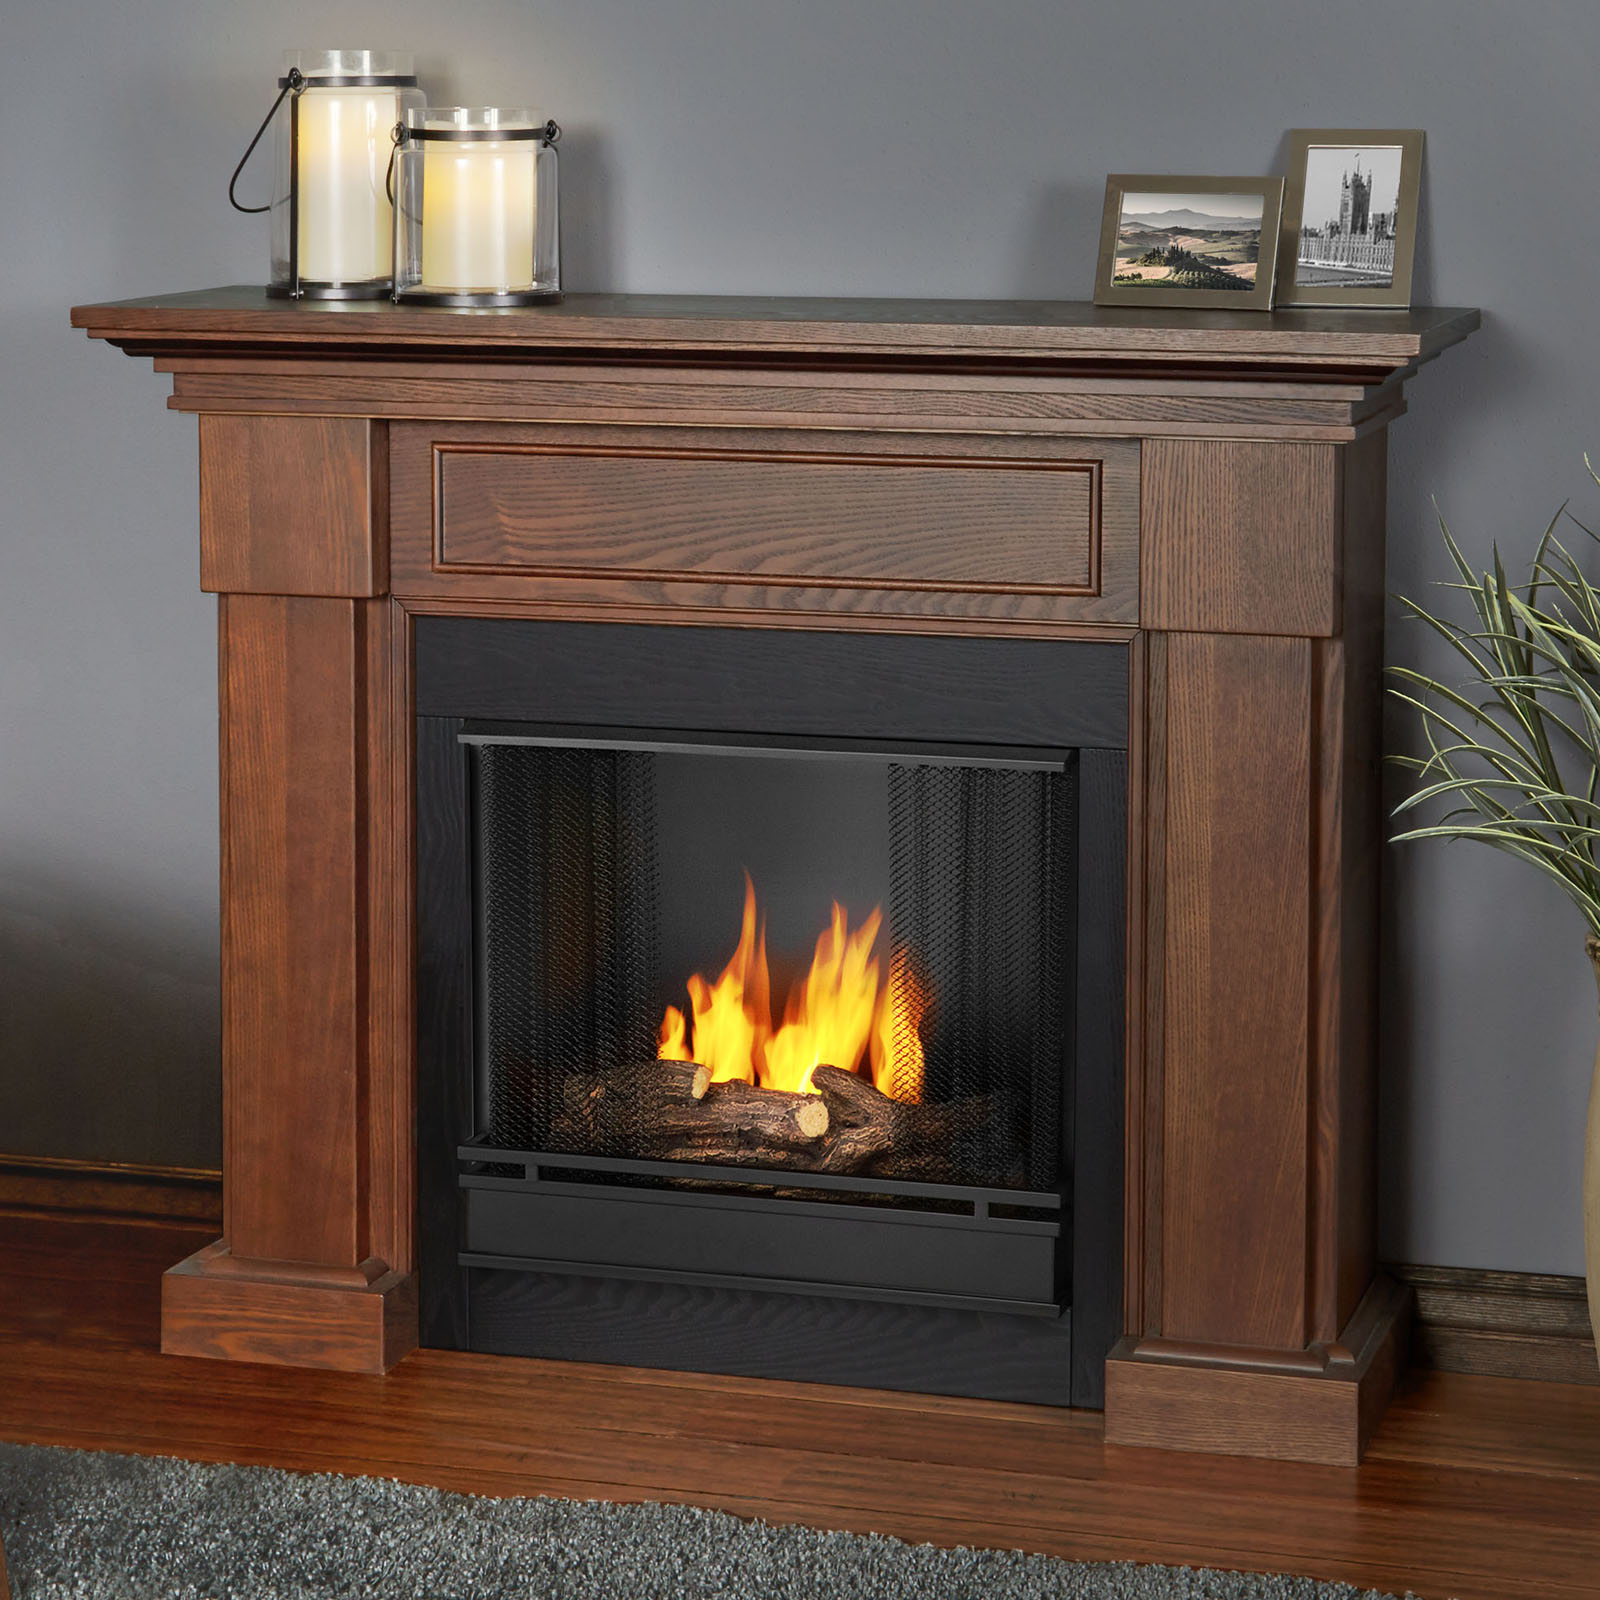 Real Flame Hillcrest Ventless Gel Fuel Fireplace